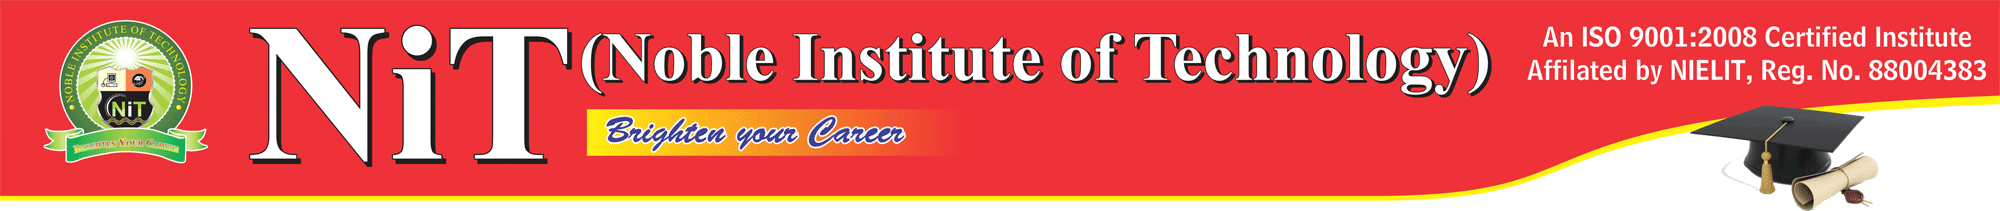 Noble Institute of Technology (NiT)